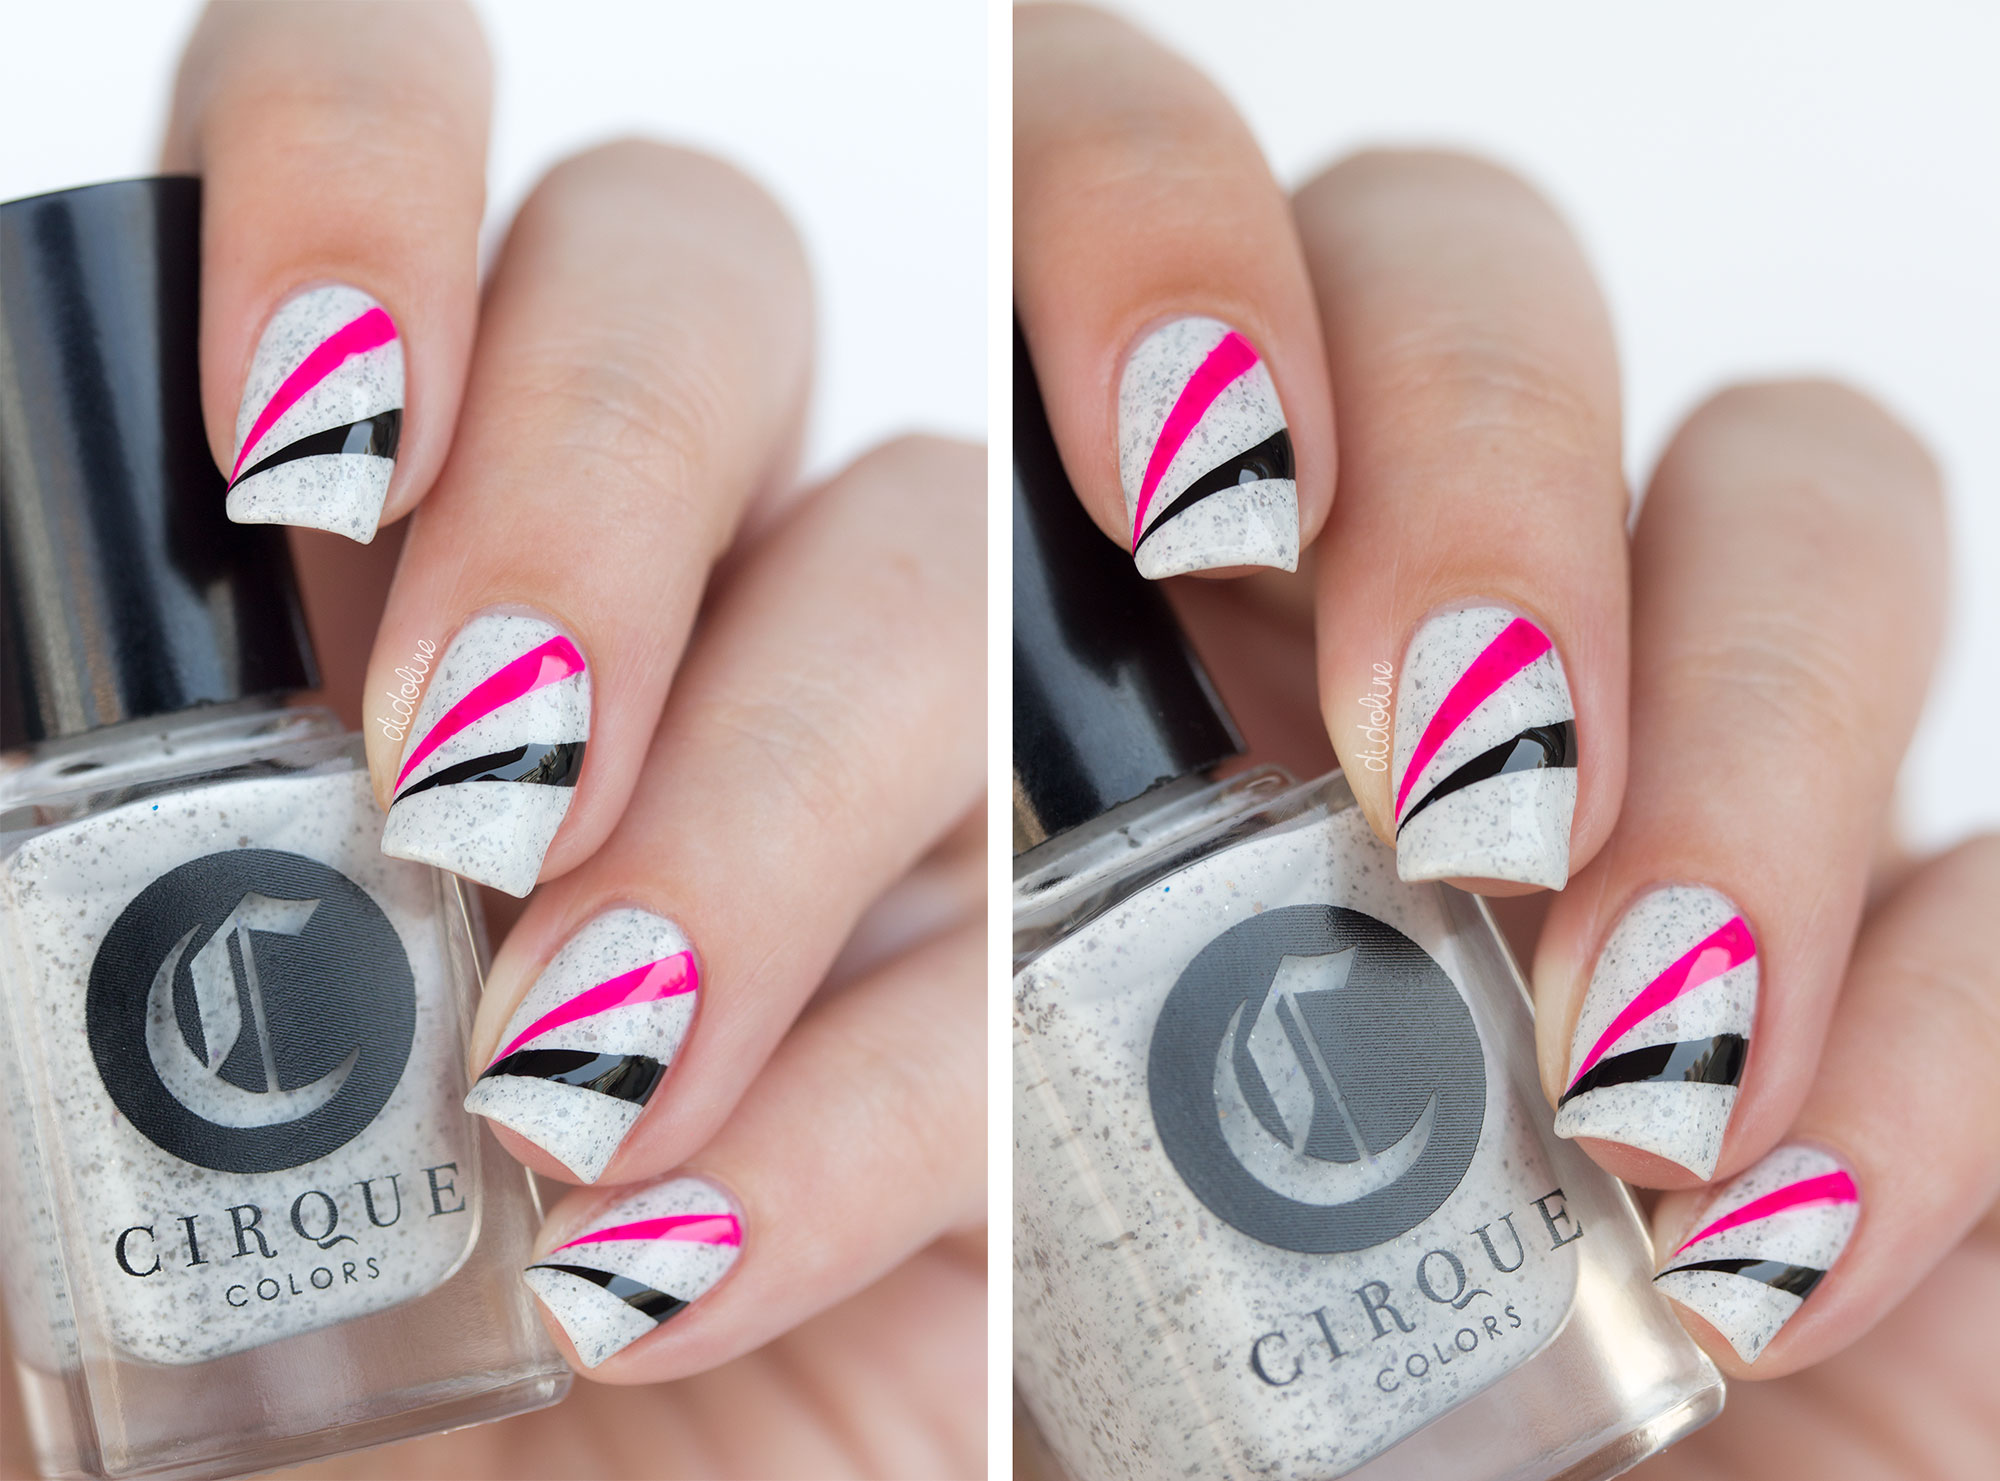 Cirque Colors - Hatch - Nail Art